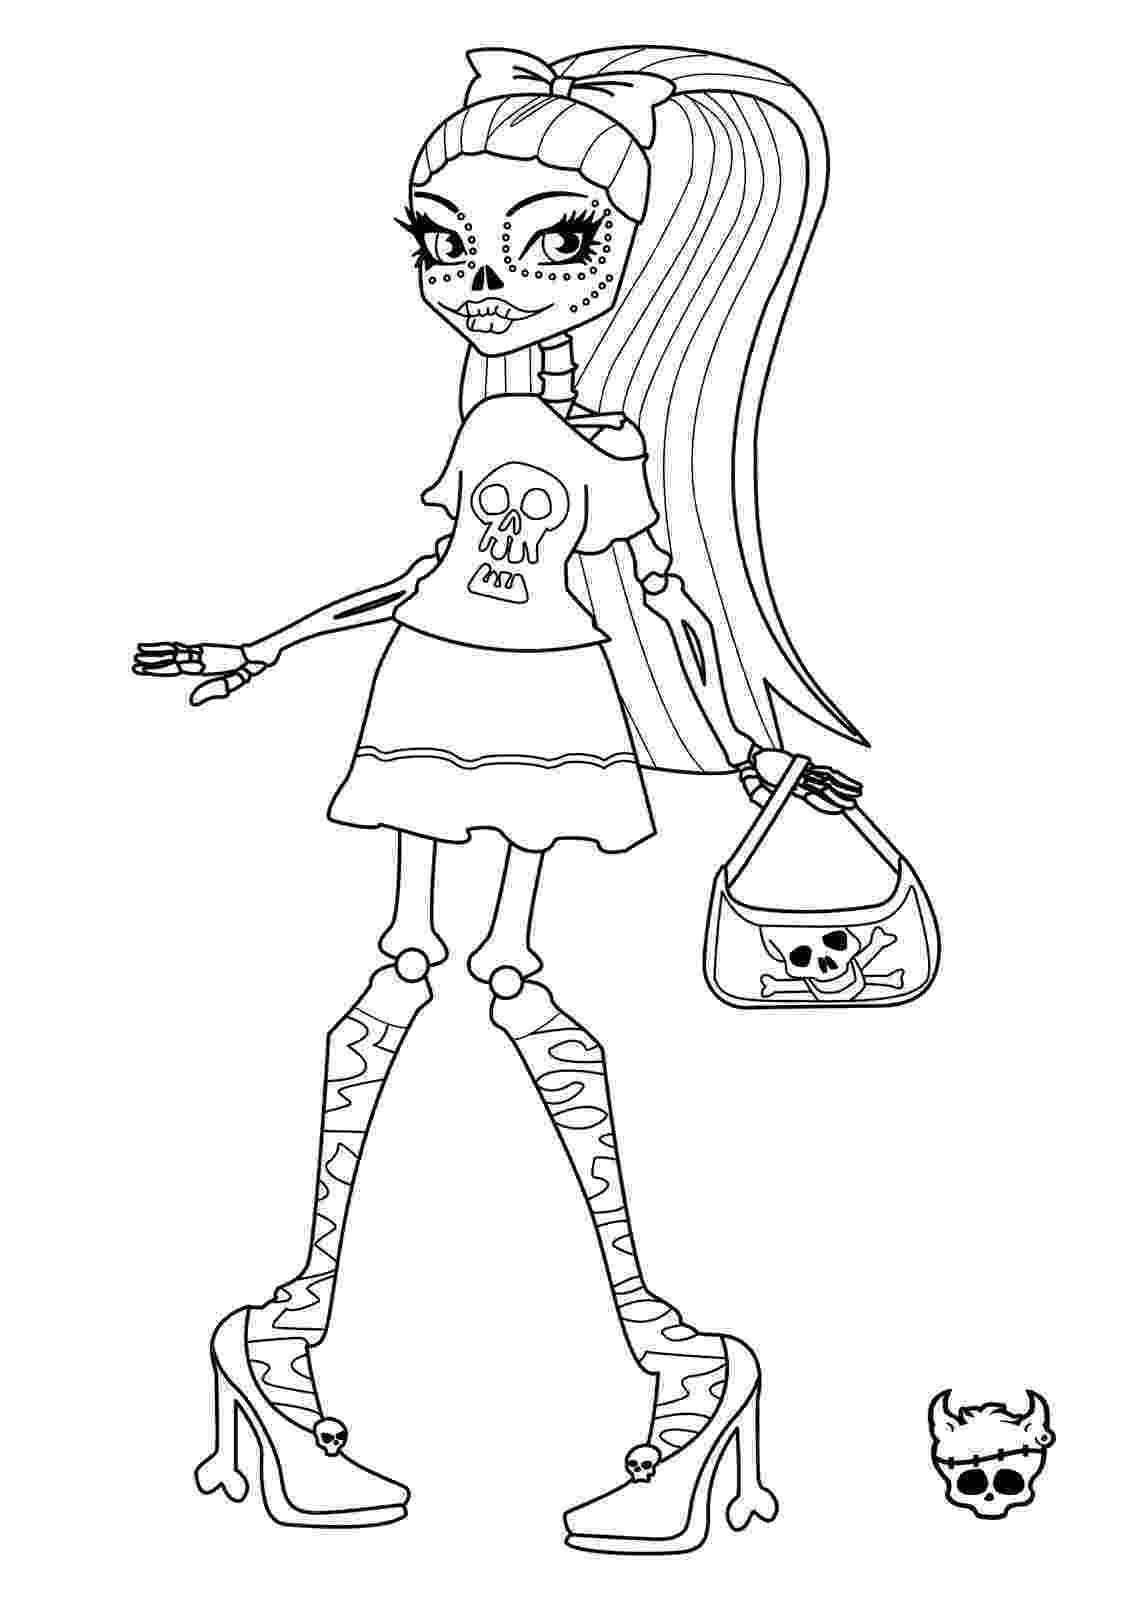 free colouring pages monster high monster high jinafire long coloring pages free printable monster pages free colouring high